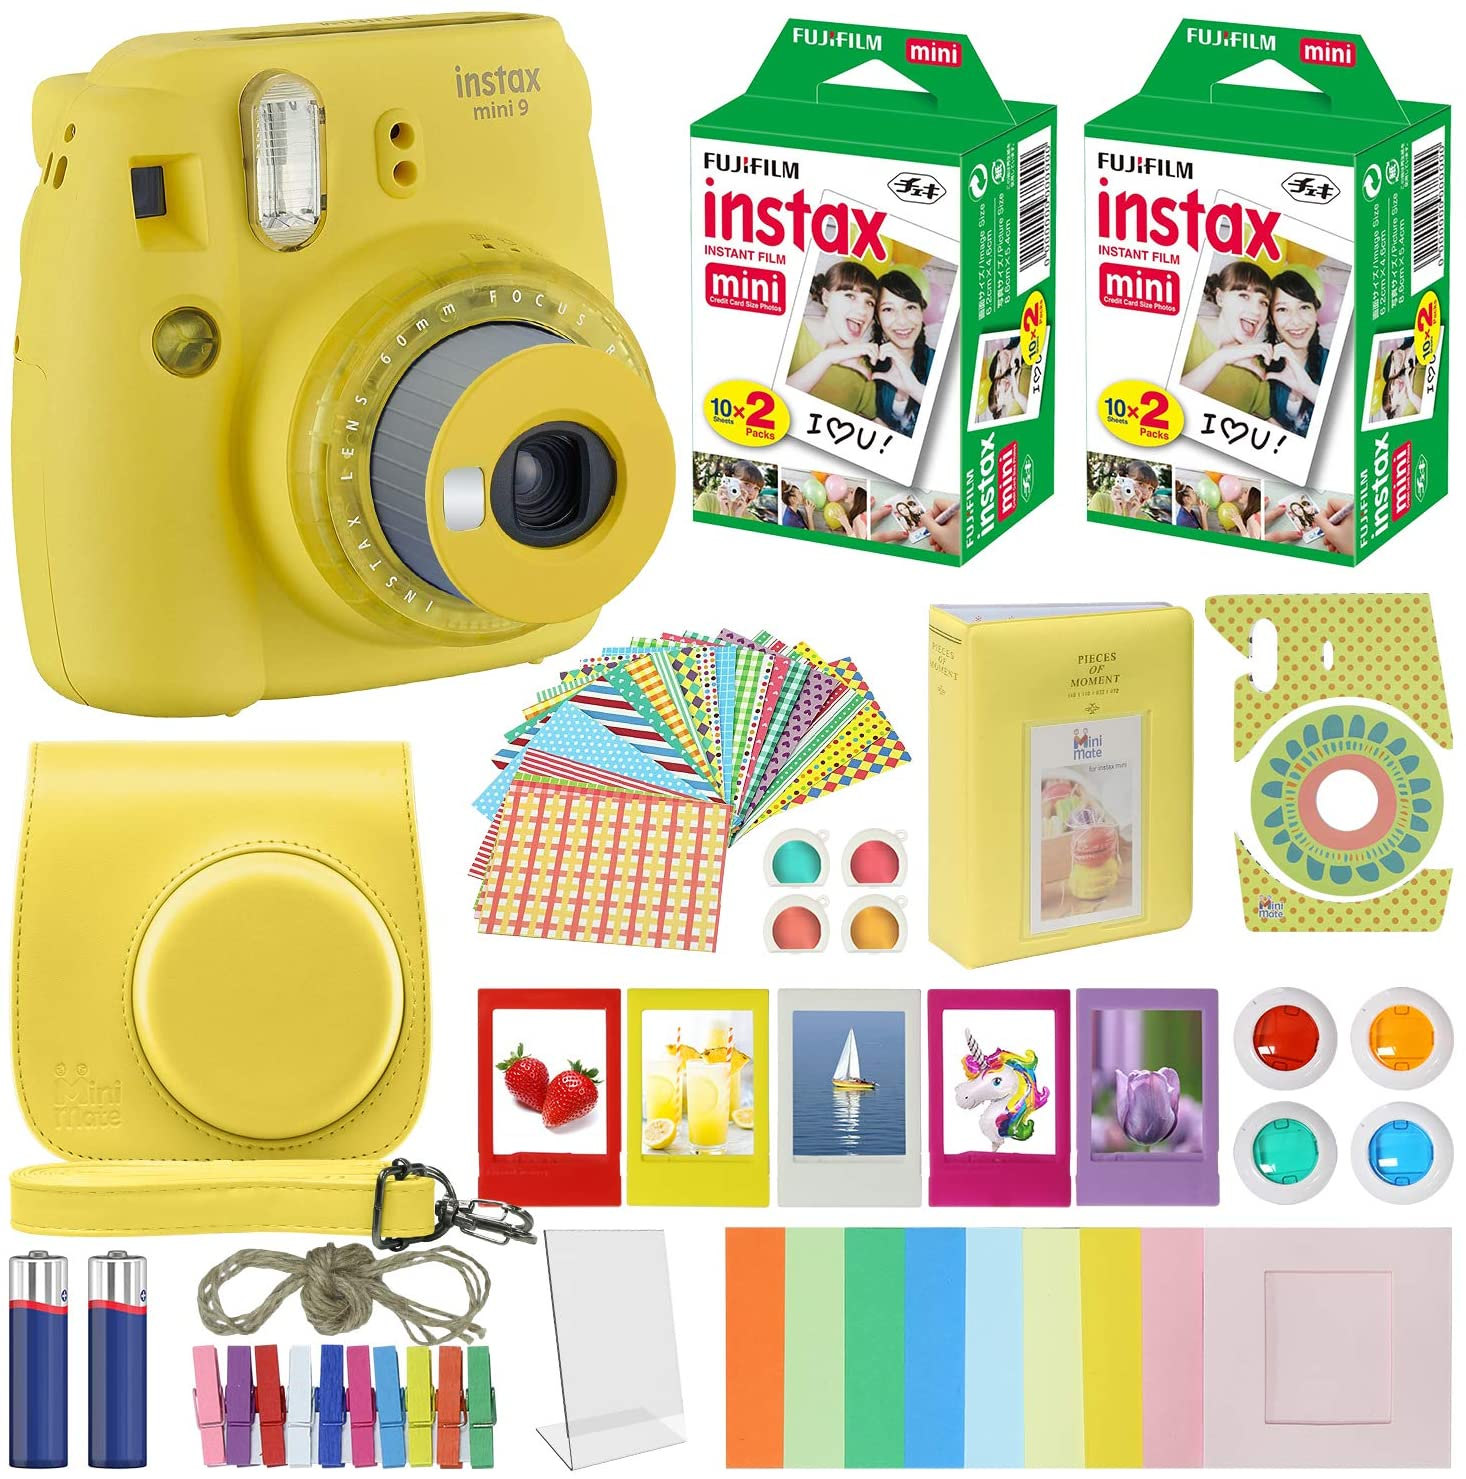 Fujifilm Instax Mini 9 Instant Camera Clear Yellow With Clear Accents With Carrying Case Fuji Instax Film Value Pack 40 Sheets Accessories Bundle Color Filters Photo Album Assorted